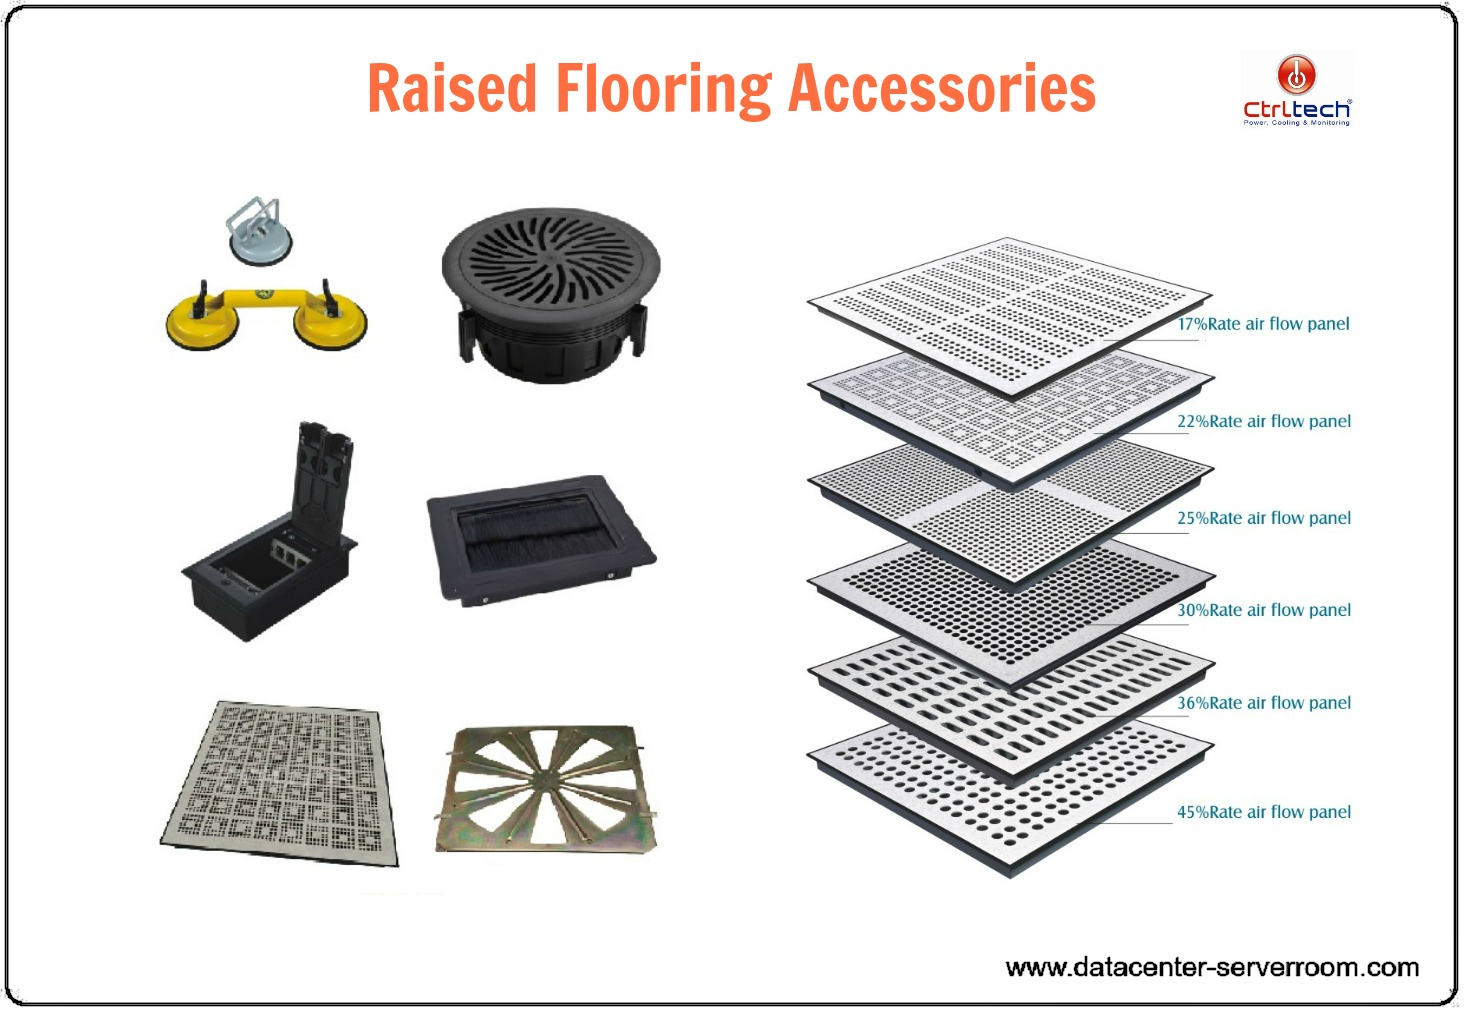 Floor Perforated Tiles Server Rooms : Raised floor data center server